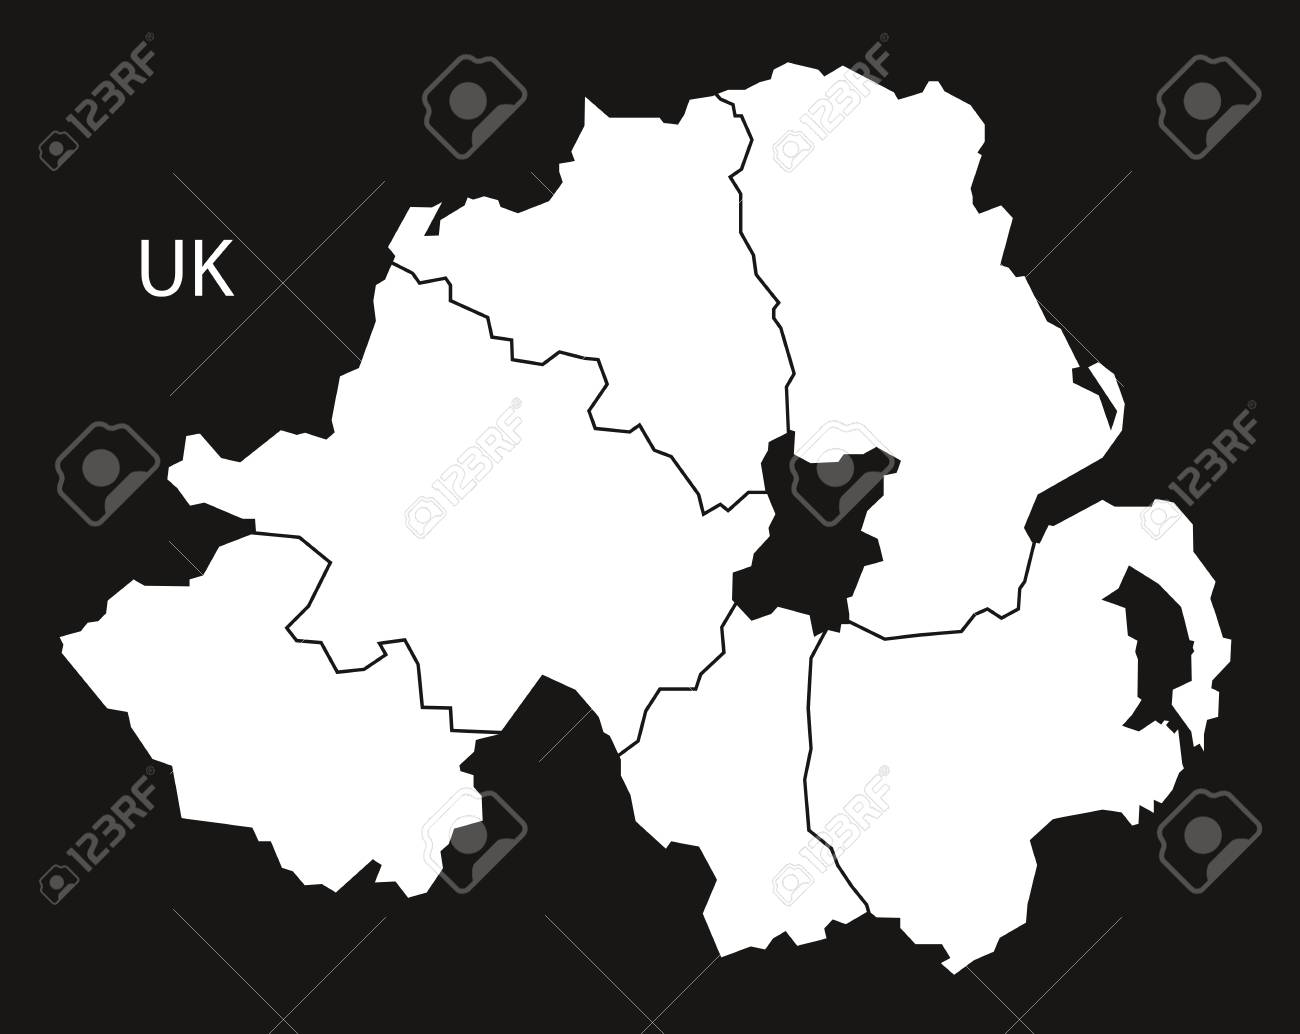 Map Of N Ireland With Counties.Northern Ireland Counties Map Black White Royalty Free Cliparts